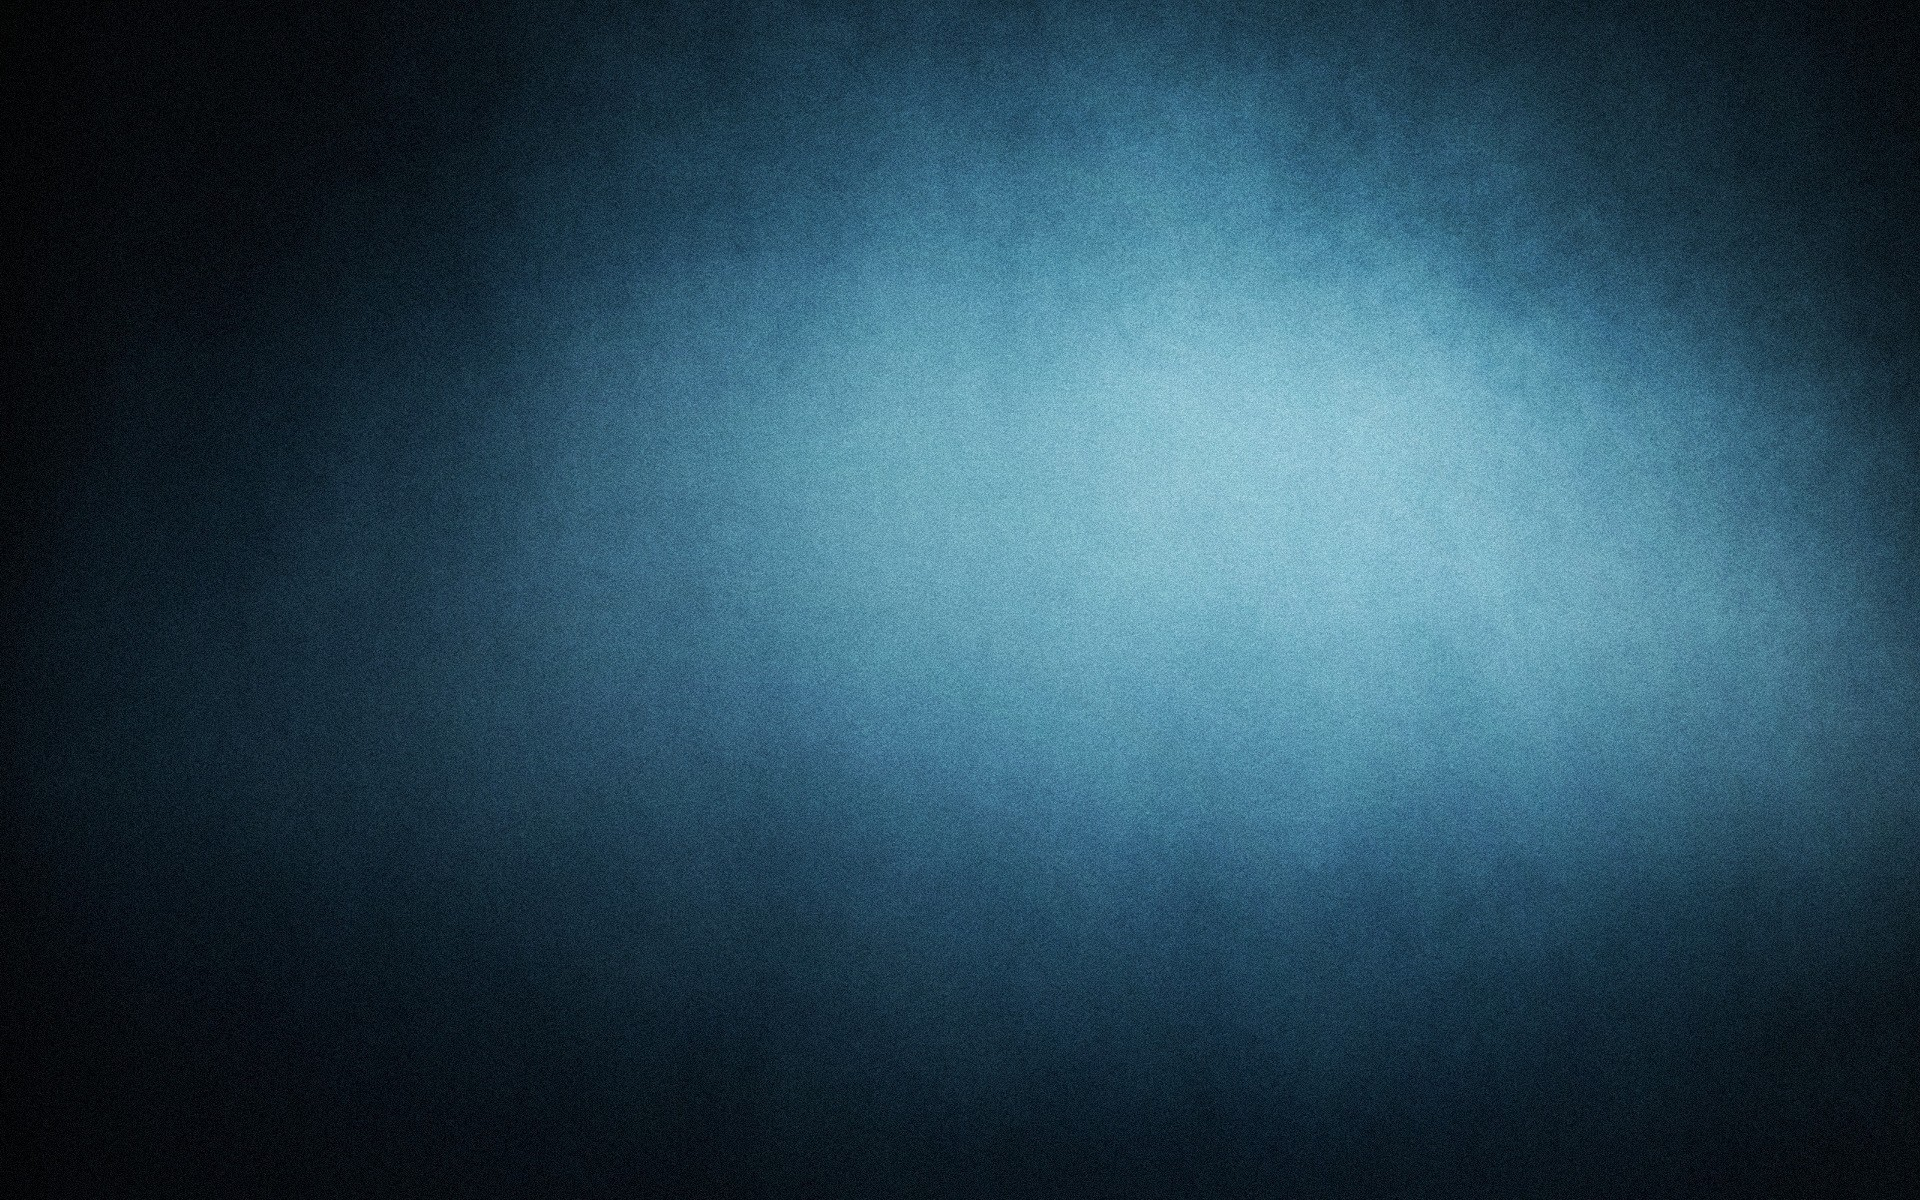 Blue texture wallpaper 14419 1920x1200